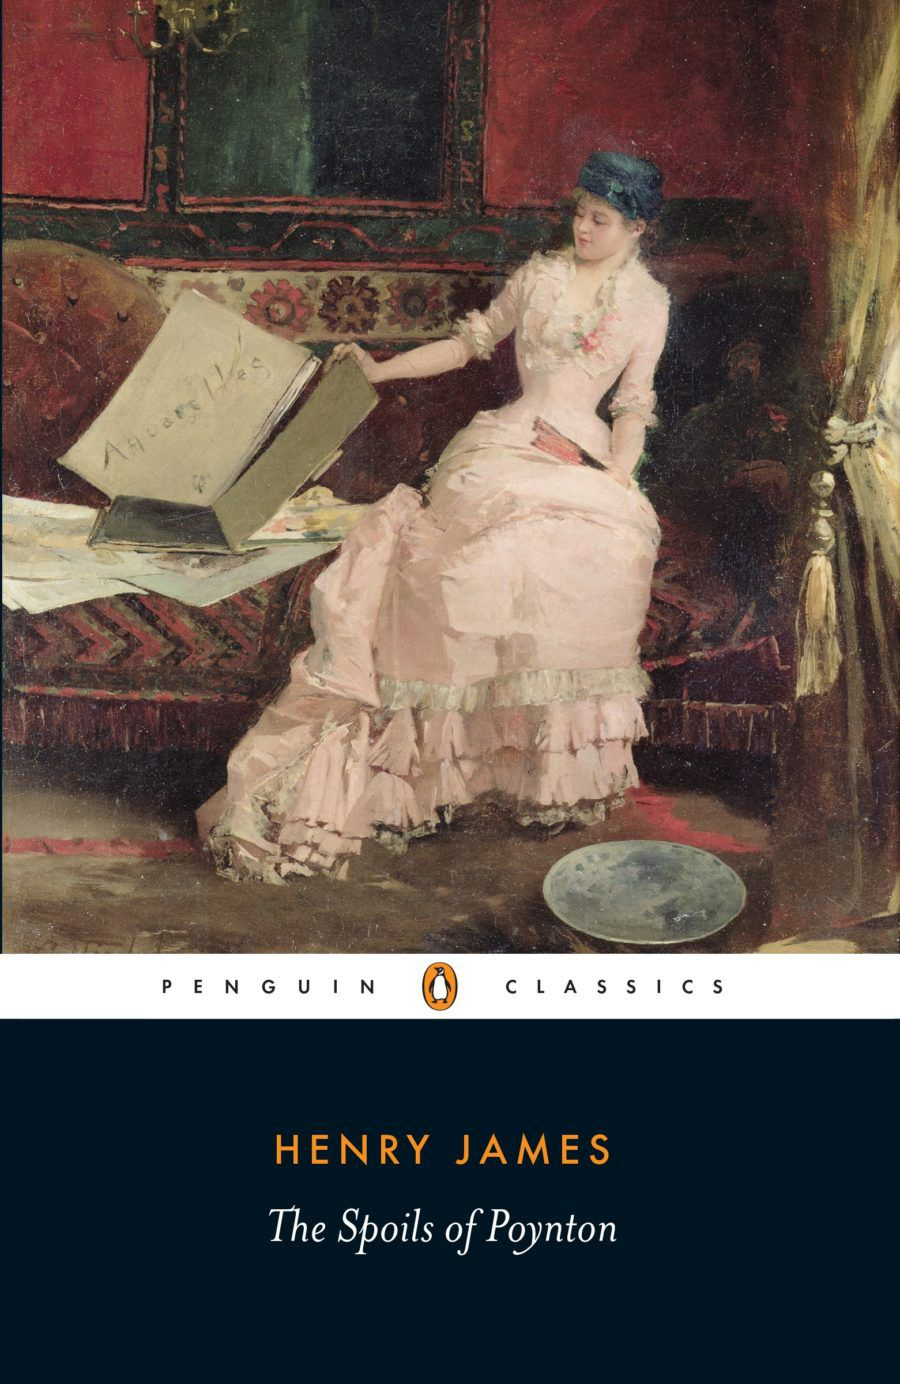 The Spoils of Ponyton by Henry James